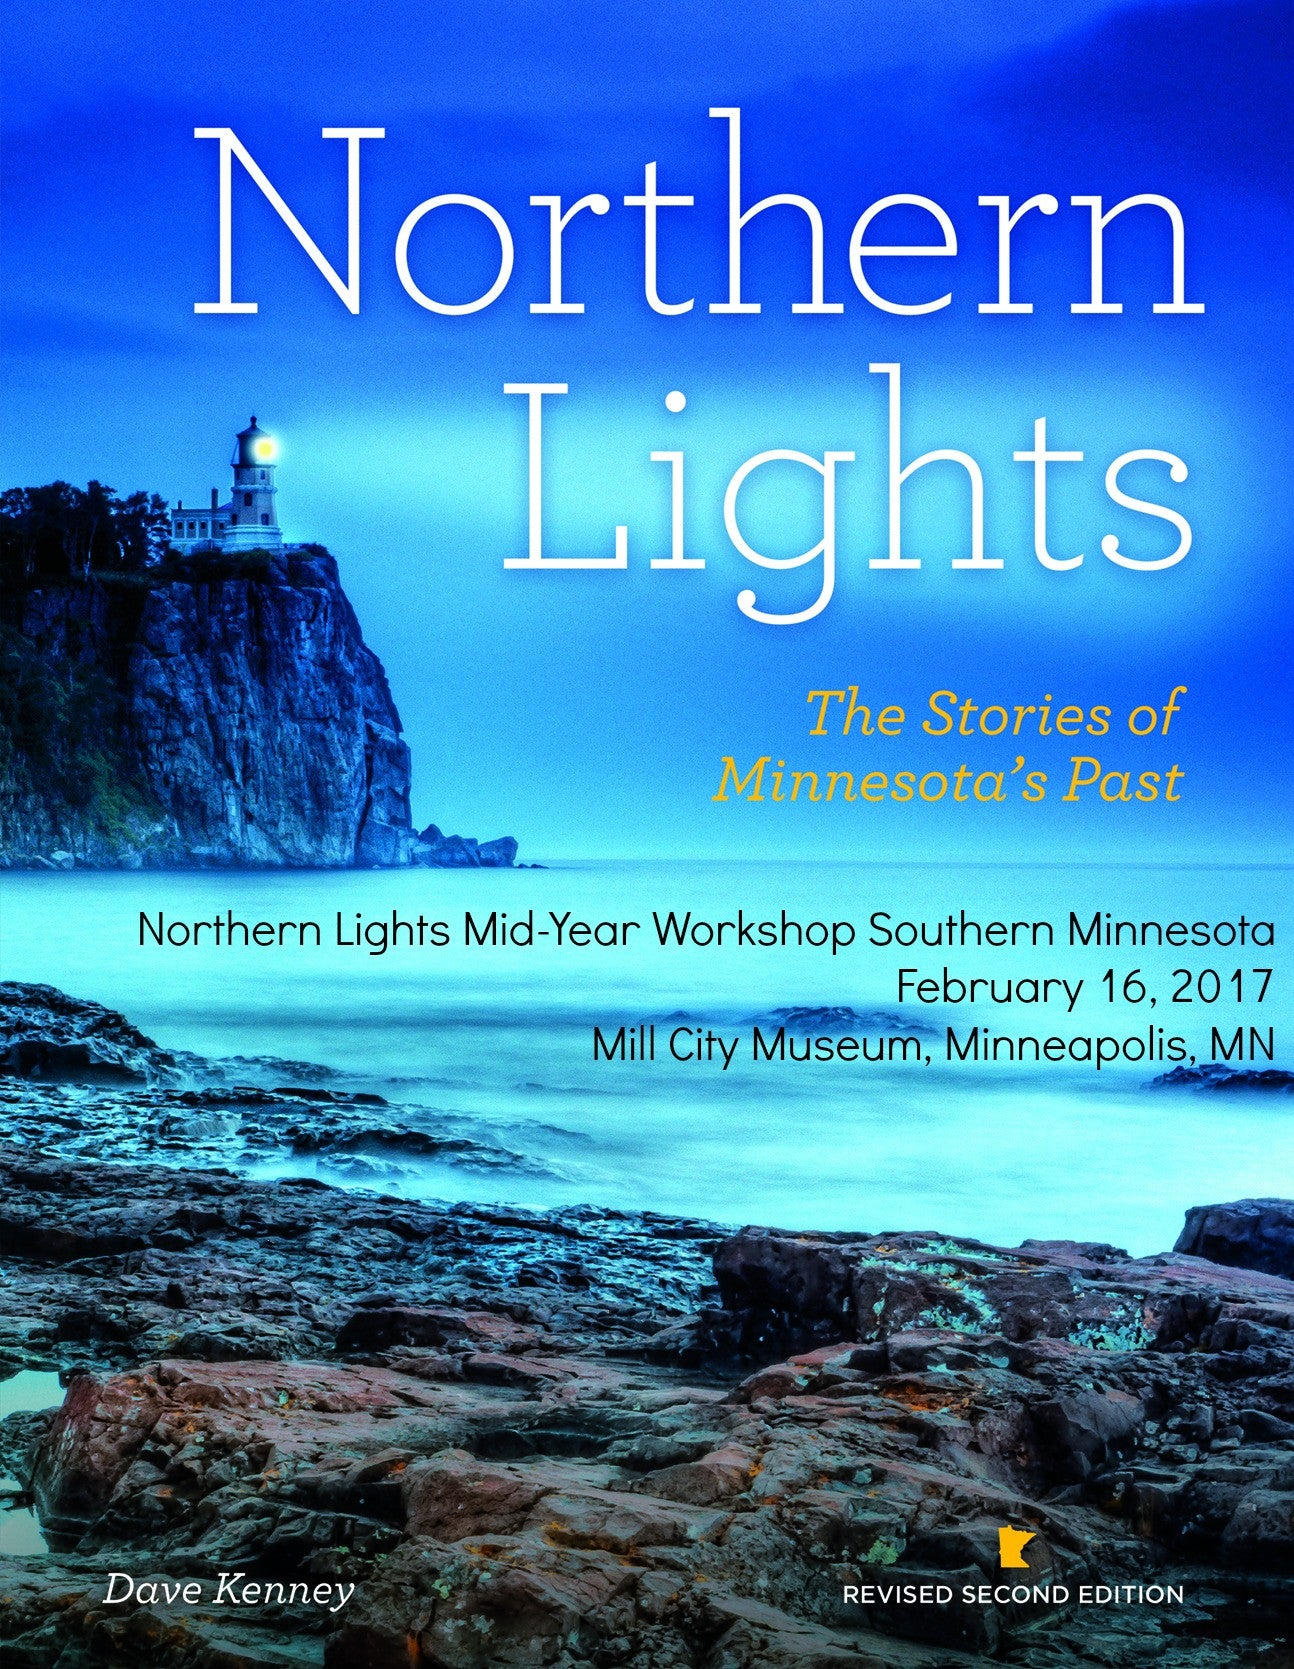 Northern Lights Mid-Year Workshop in Southern Minnesota  - February 16, 2017